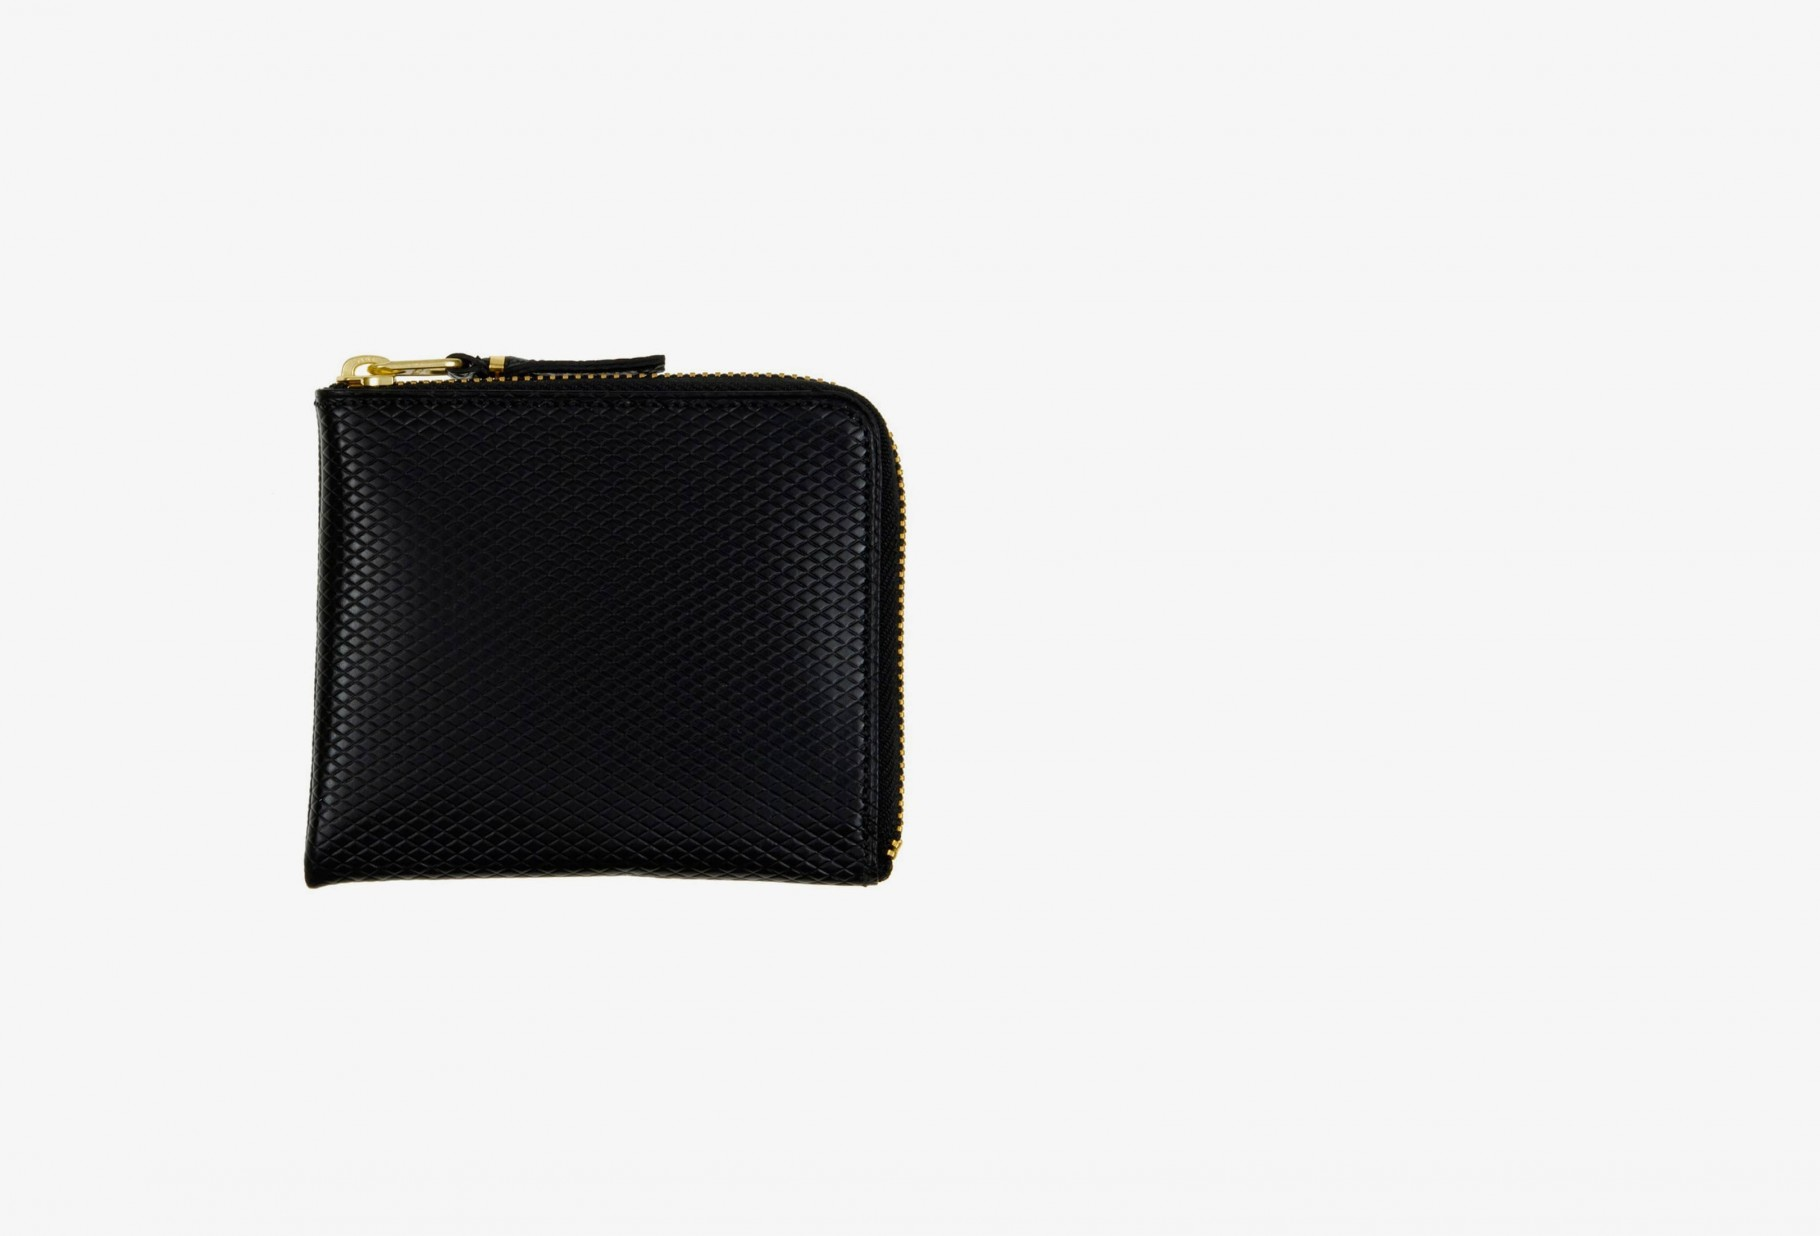 CDG WALLETS / Cdg luxury group 3100lg Black